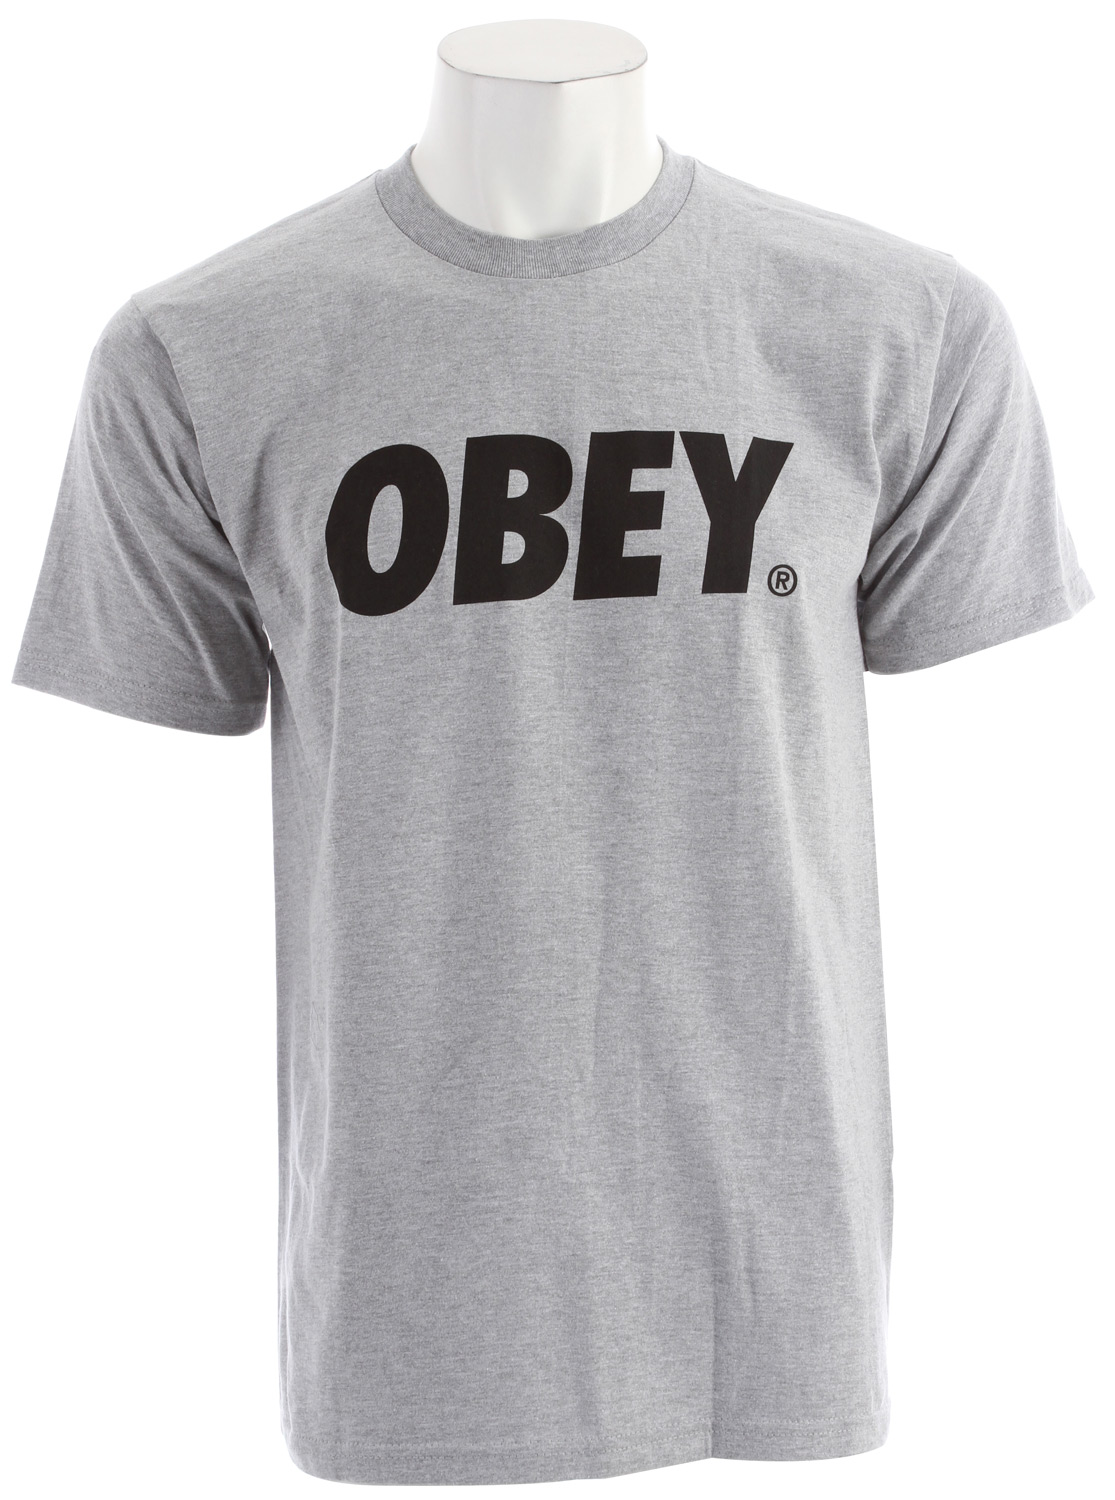 Key Features of the Obey Obey Font Basic T-Shirt: Heavy weight Regular fit tee with inset Rib Crew neck 100% Cotton - $20.95